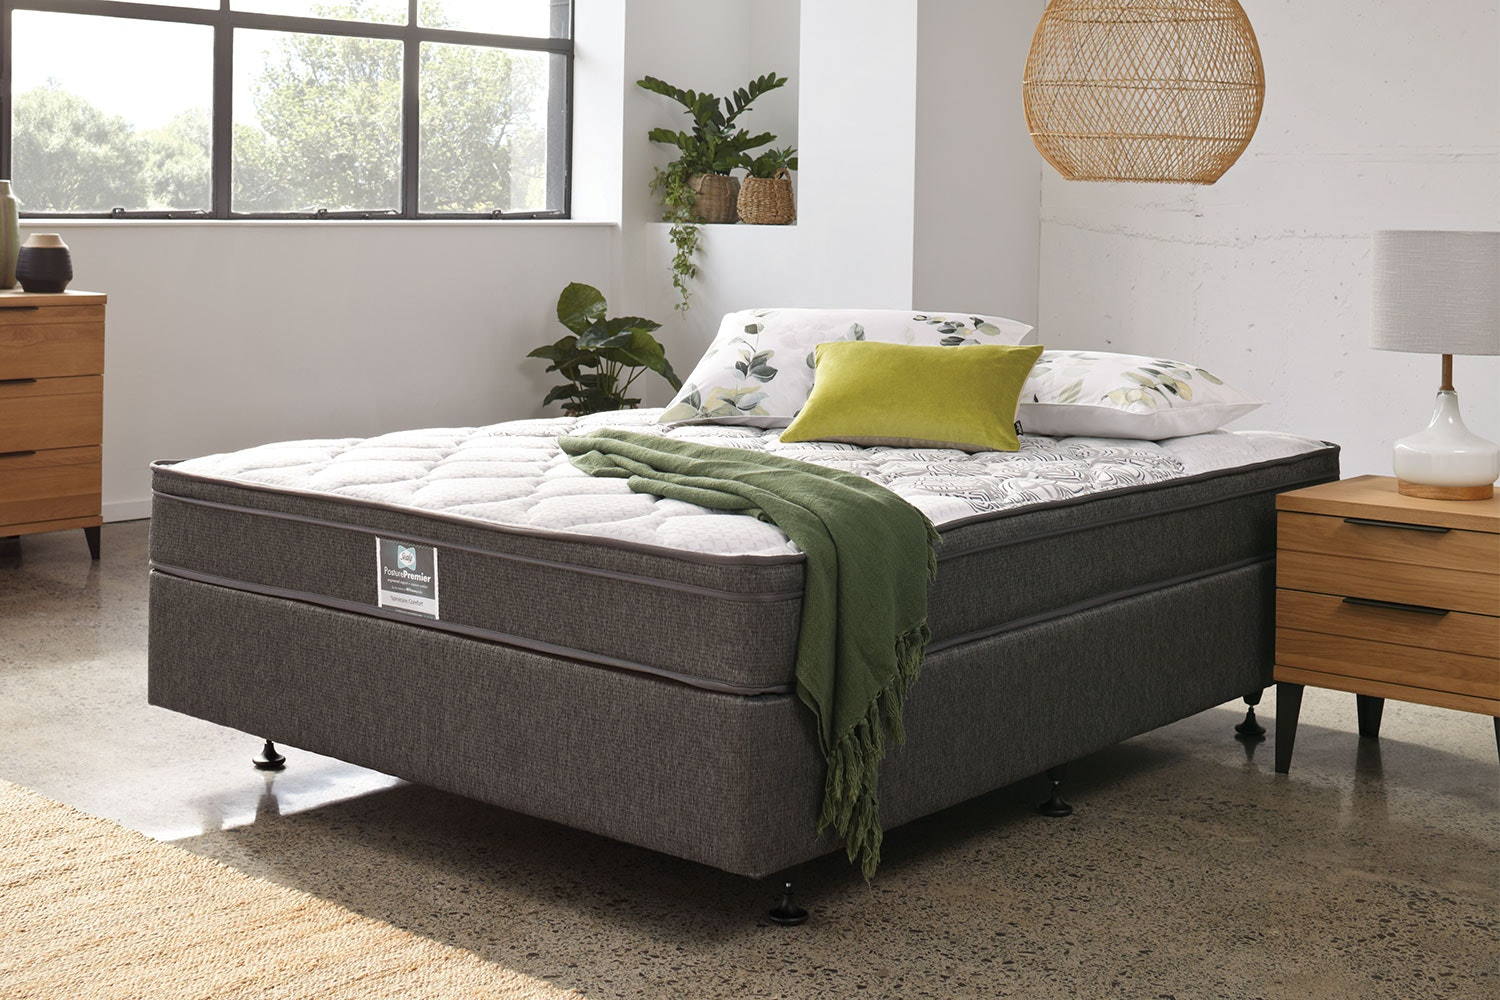 Spinecare Comfort King Single Bed by Sealy